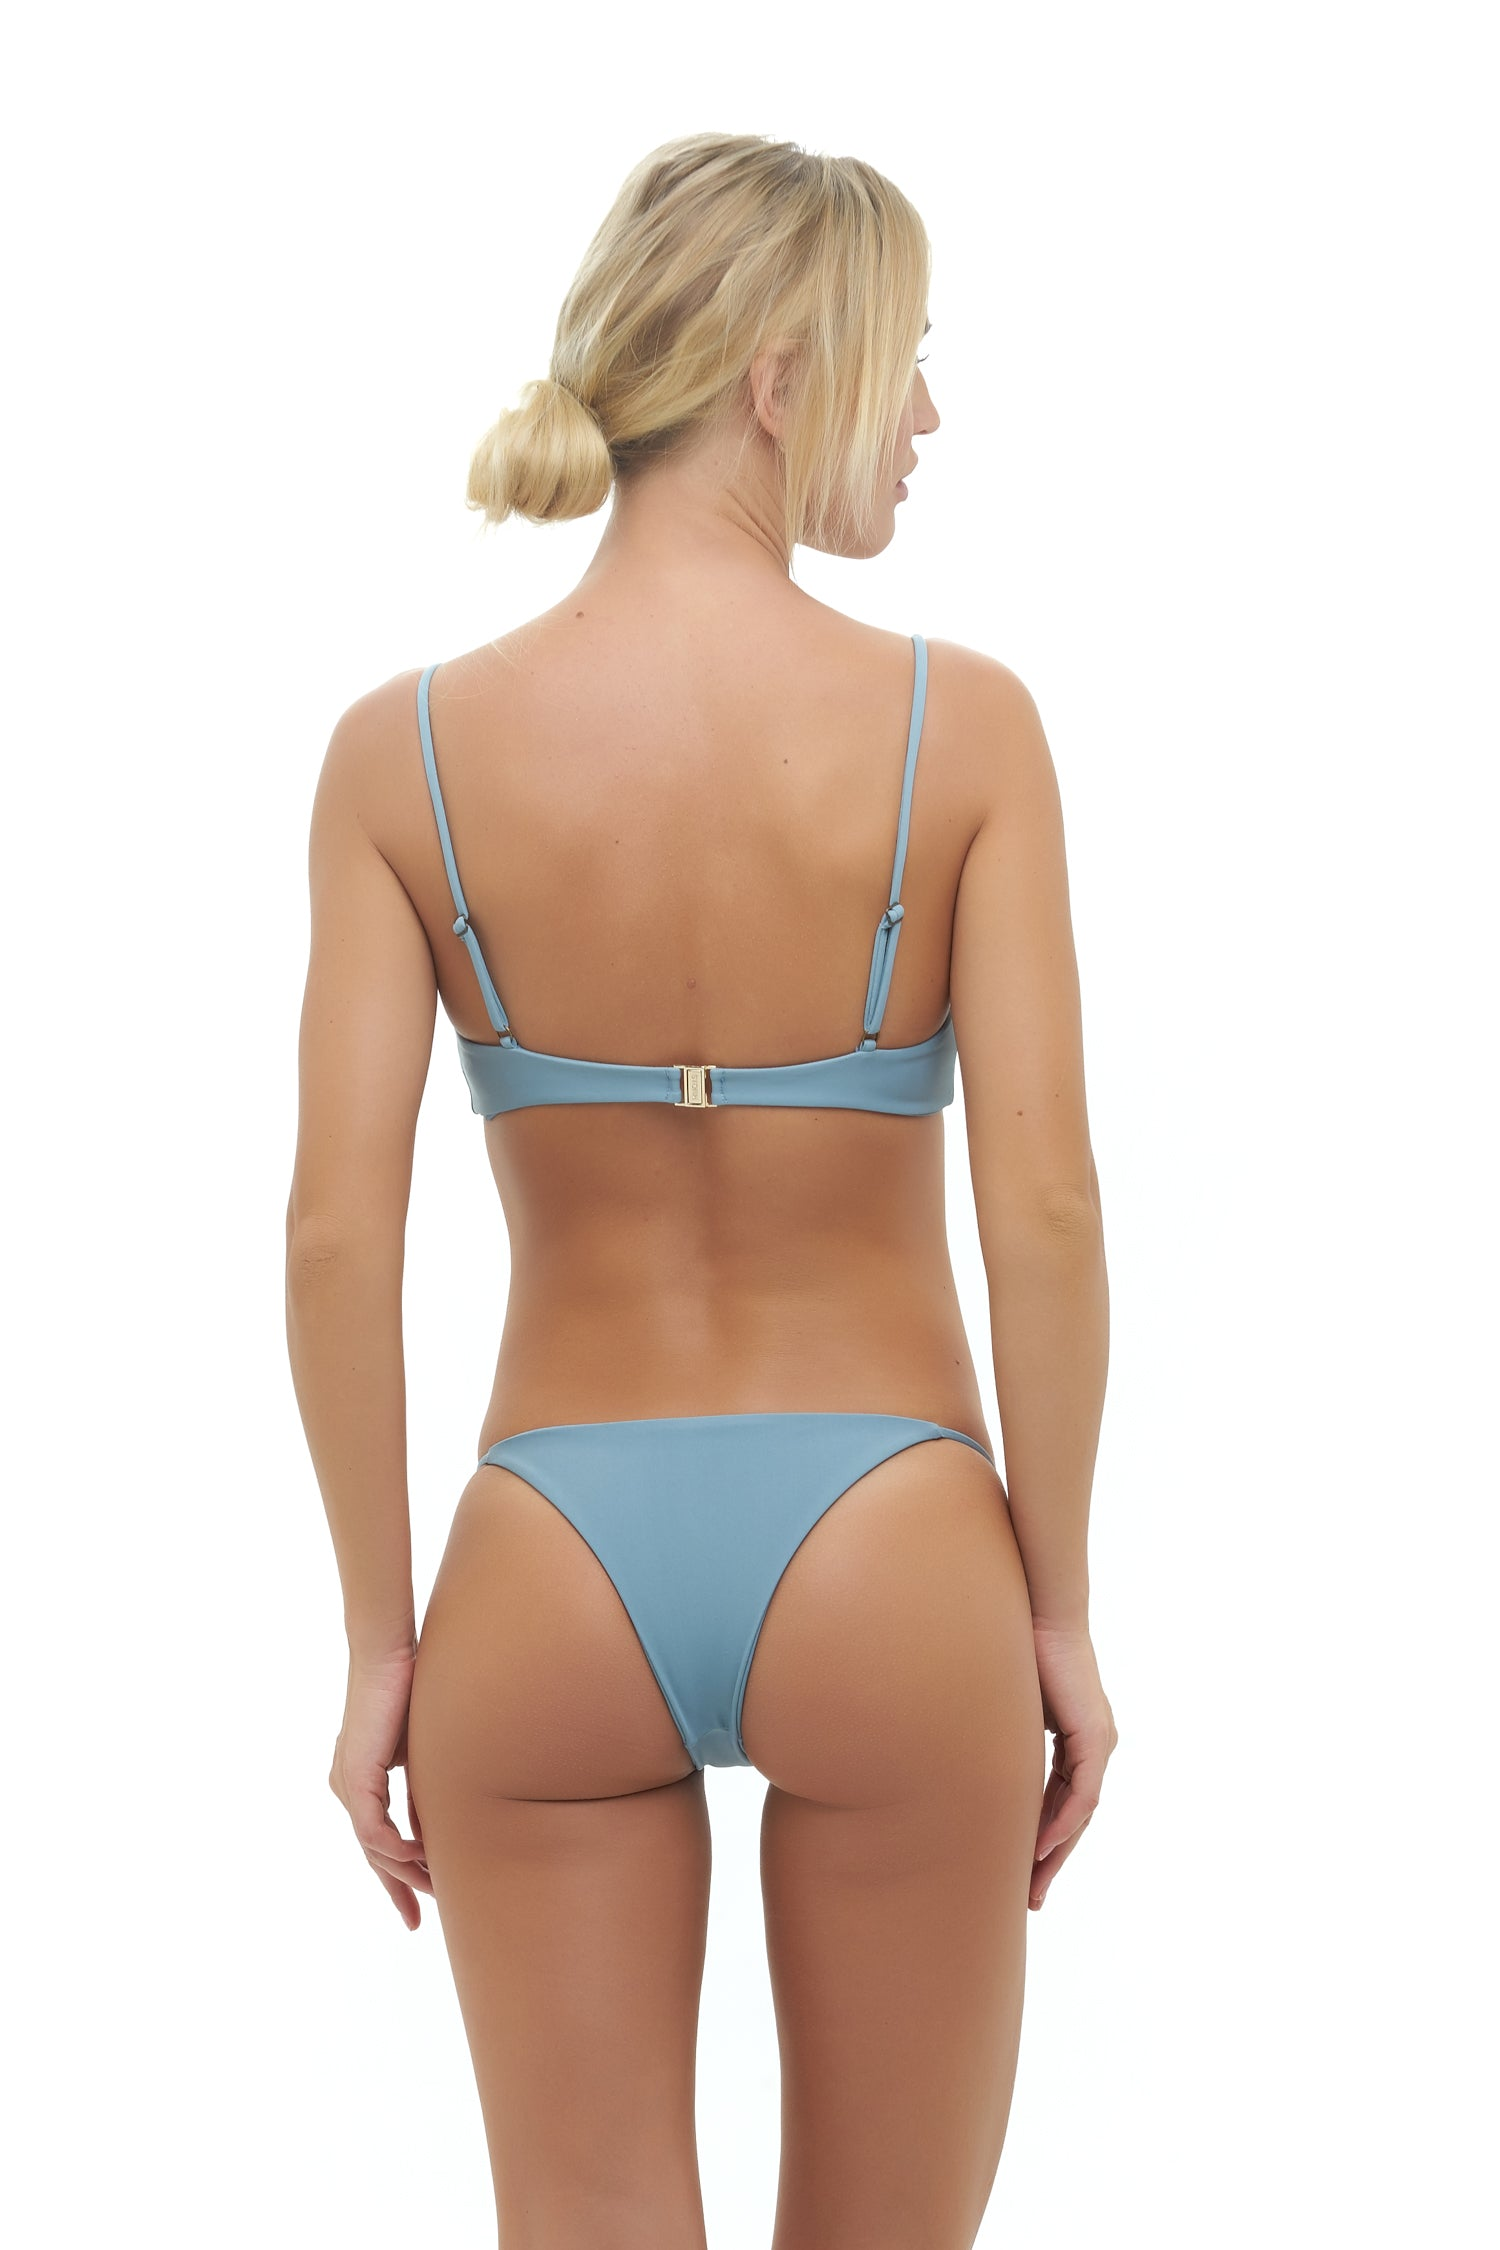 Storm Swimwear - Capri - Tube Single Side Strap Bikini Bottom in Dusk Blue